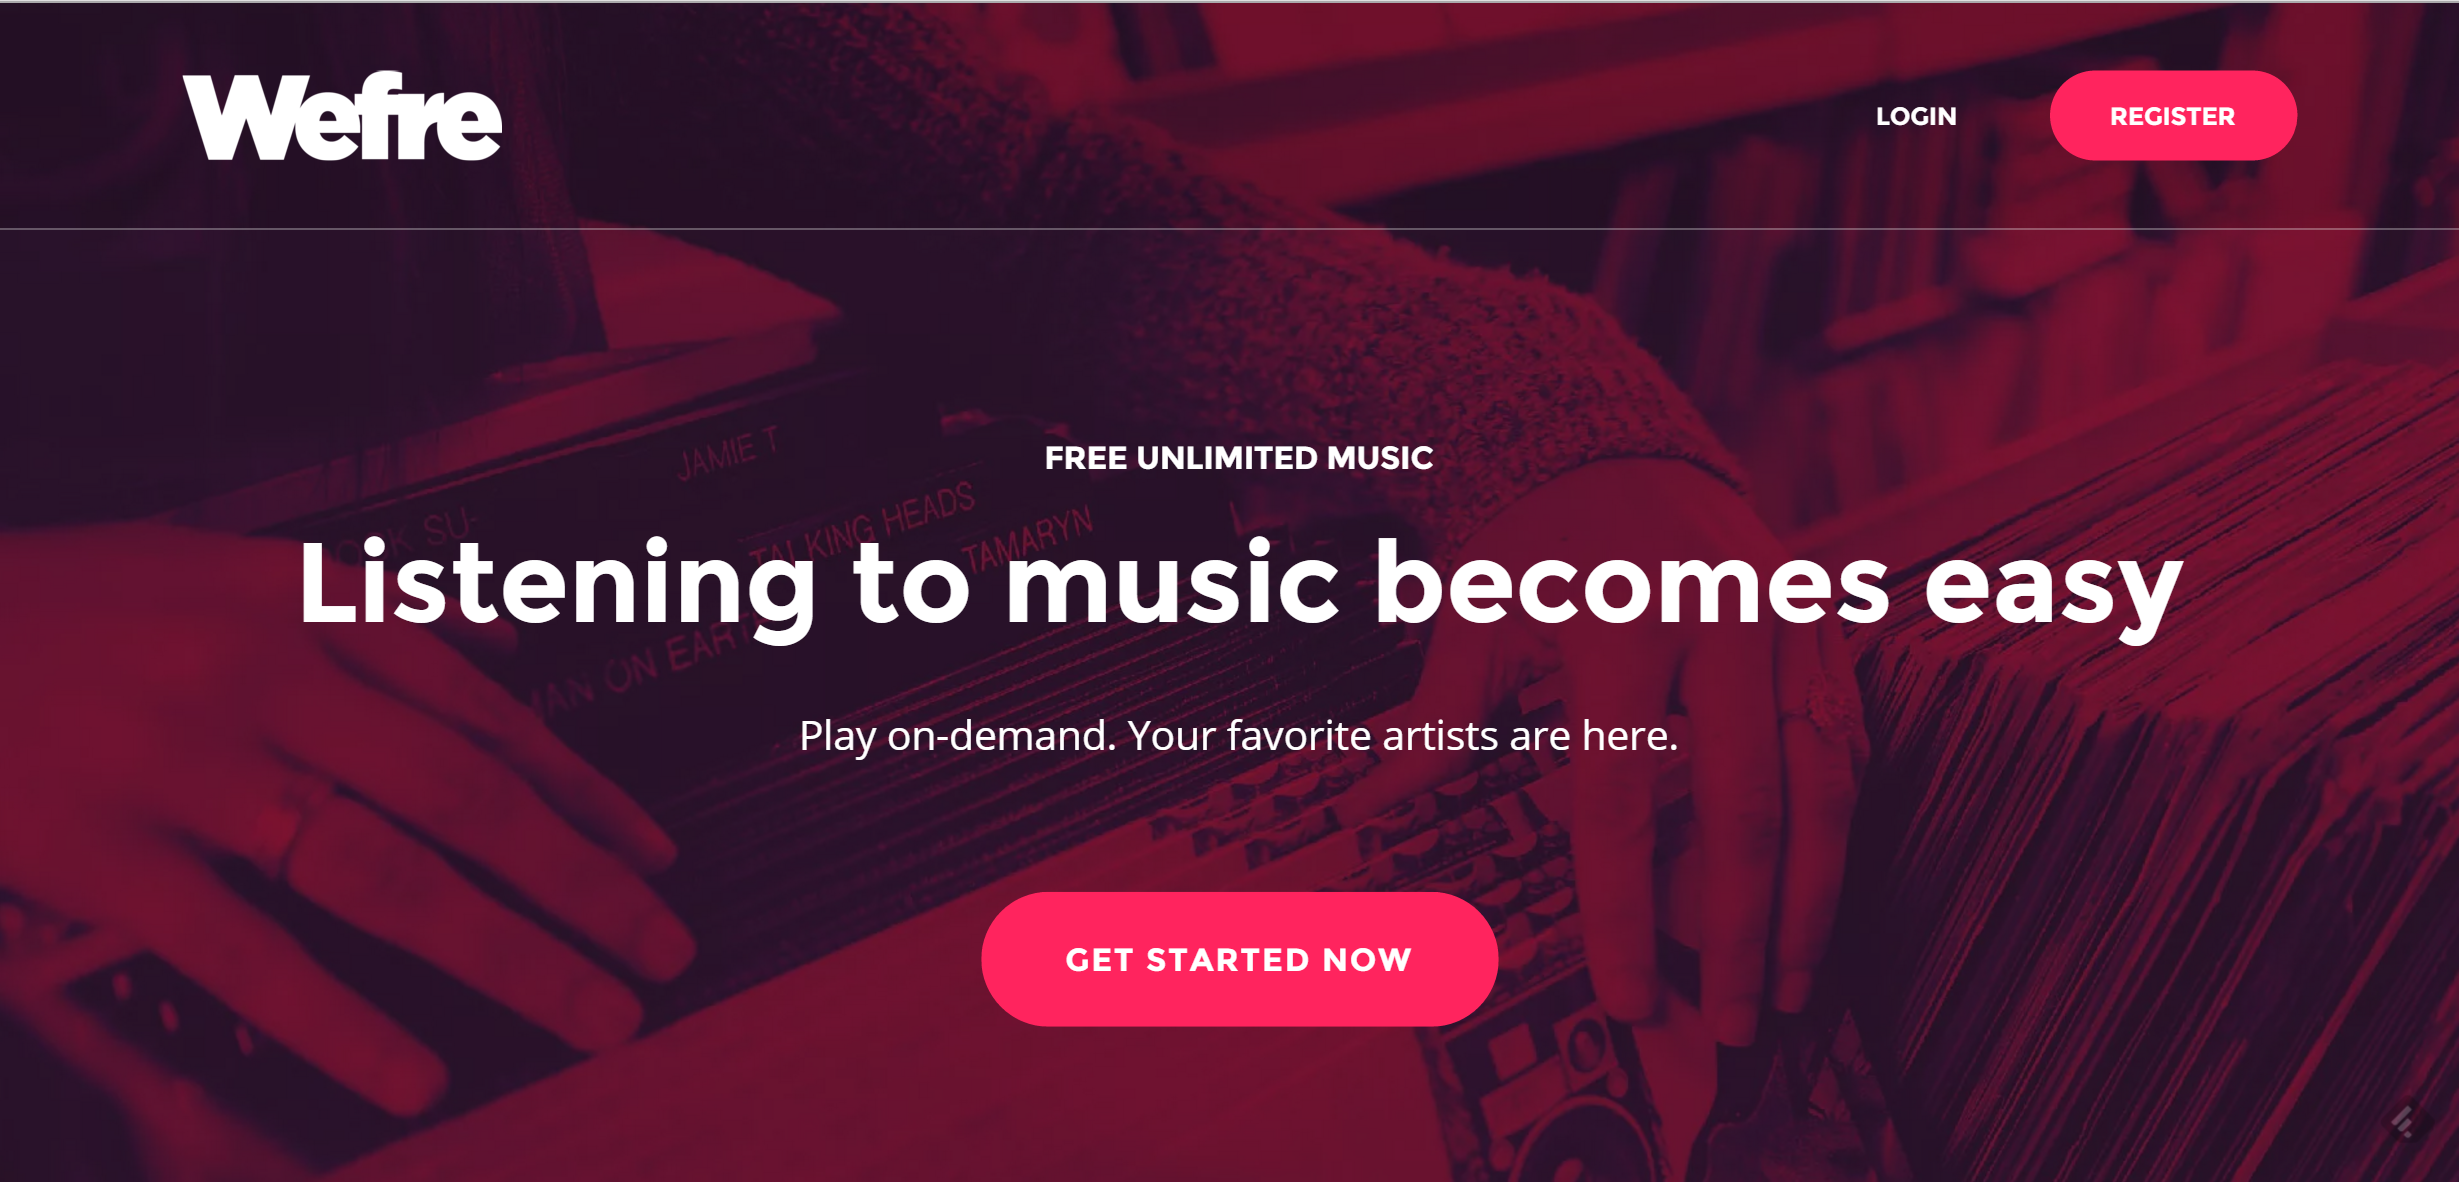 Wefre Lets You Stream Free Music Online With No Ads